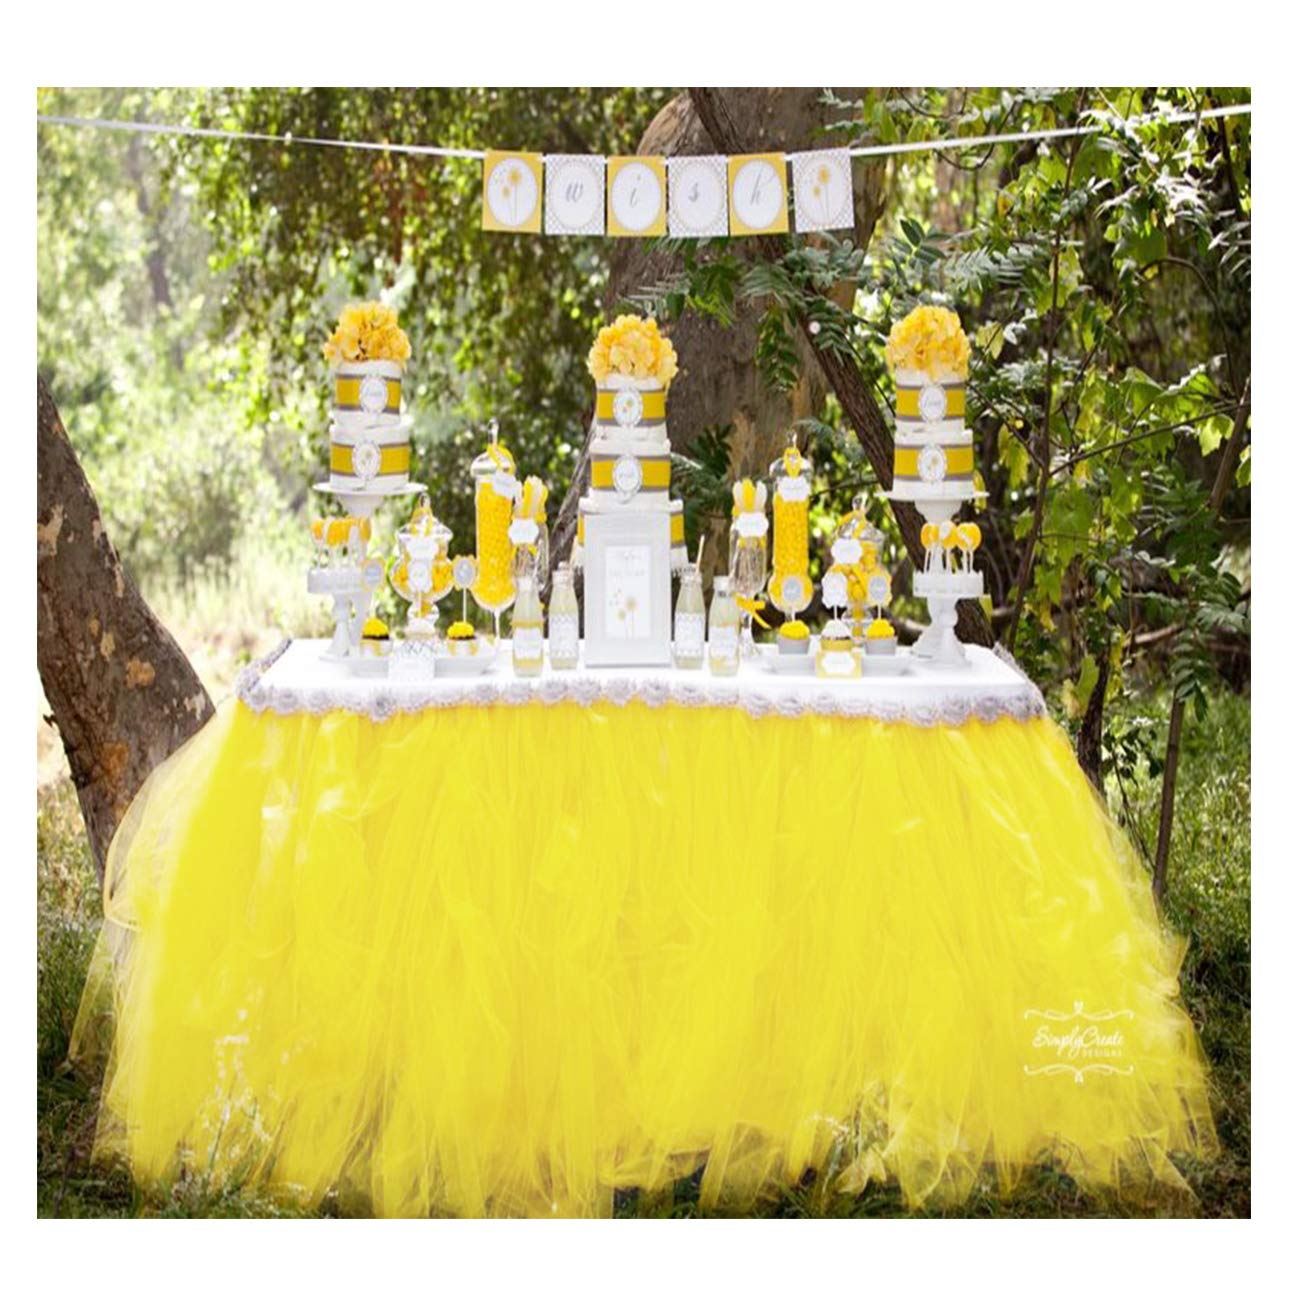 Tutu Table Skirt Fluffy Tulle Lace Table Skirting for Rectangle or Round Tablecloth Party Decoration 1 Yard (Lemon Yellow) by HoneyDec